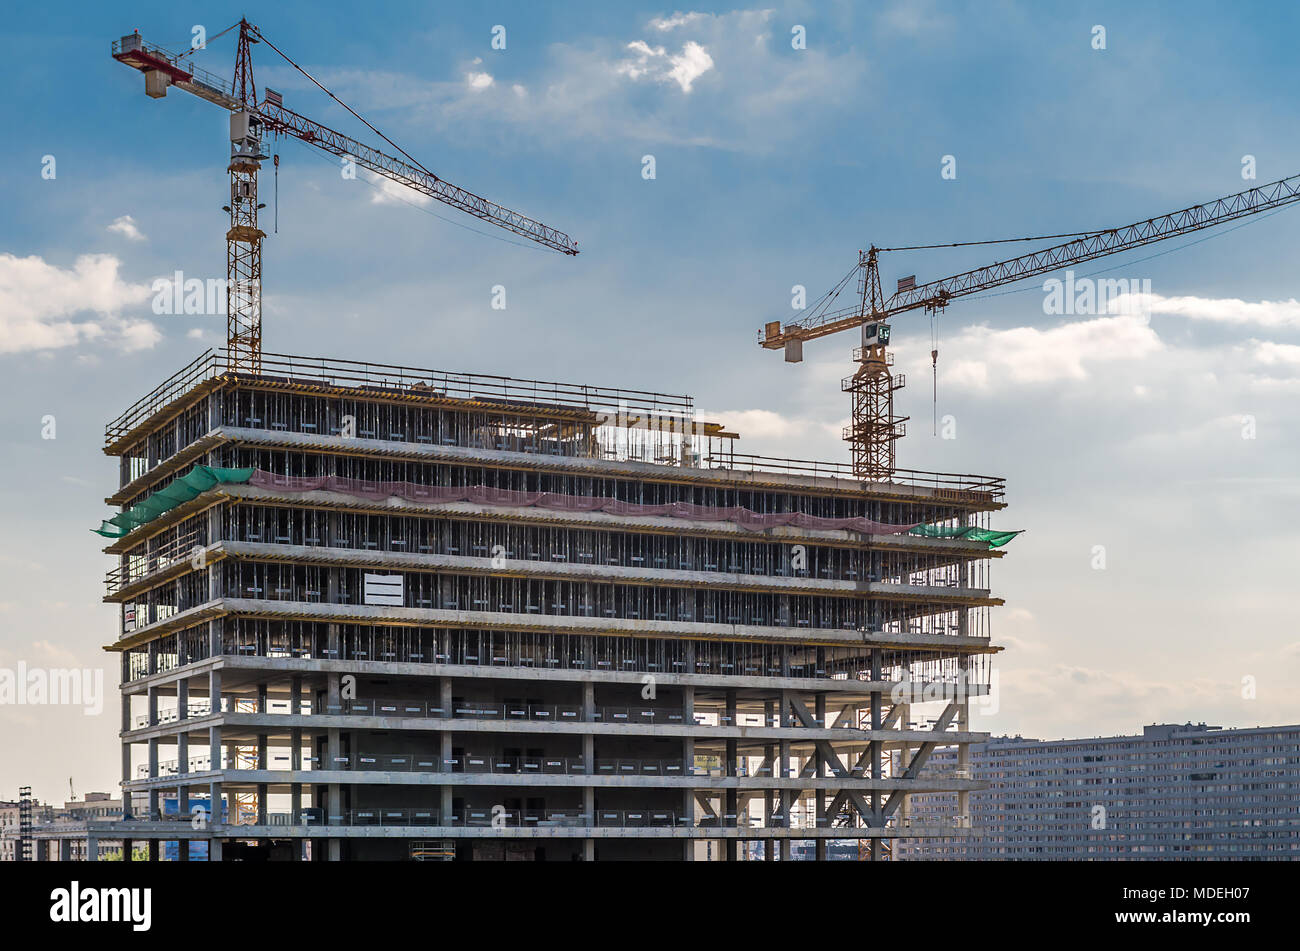 View of new construction of high-rise against blue sky in KAtowice, Silesia, Poland. - Stock Image